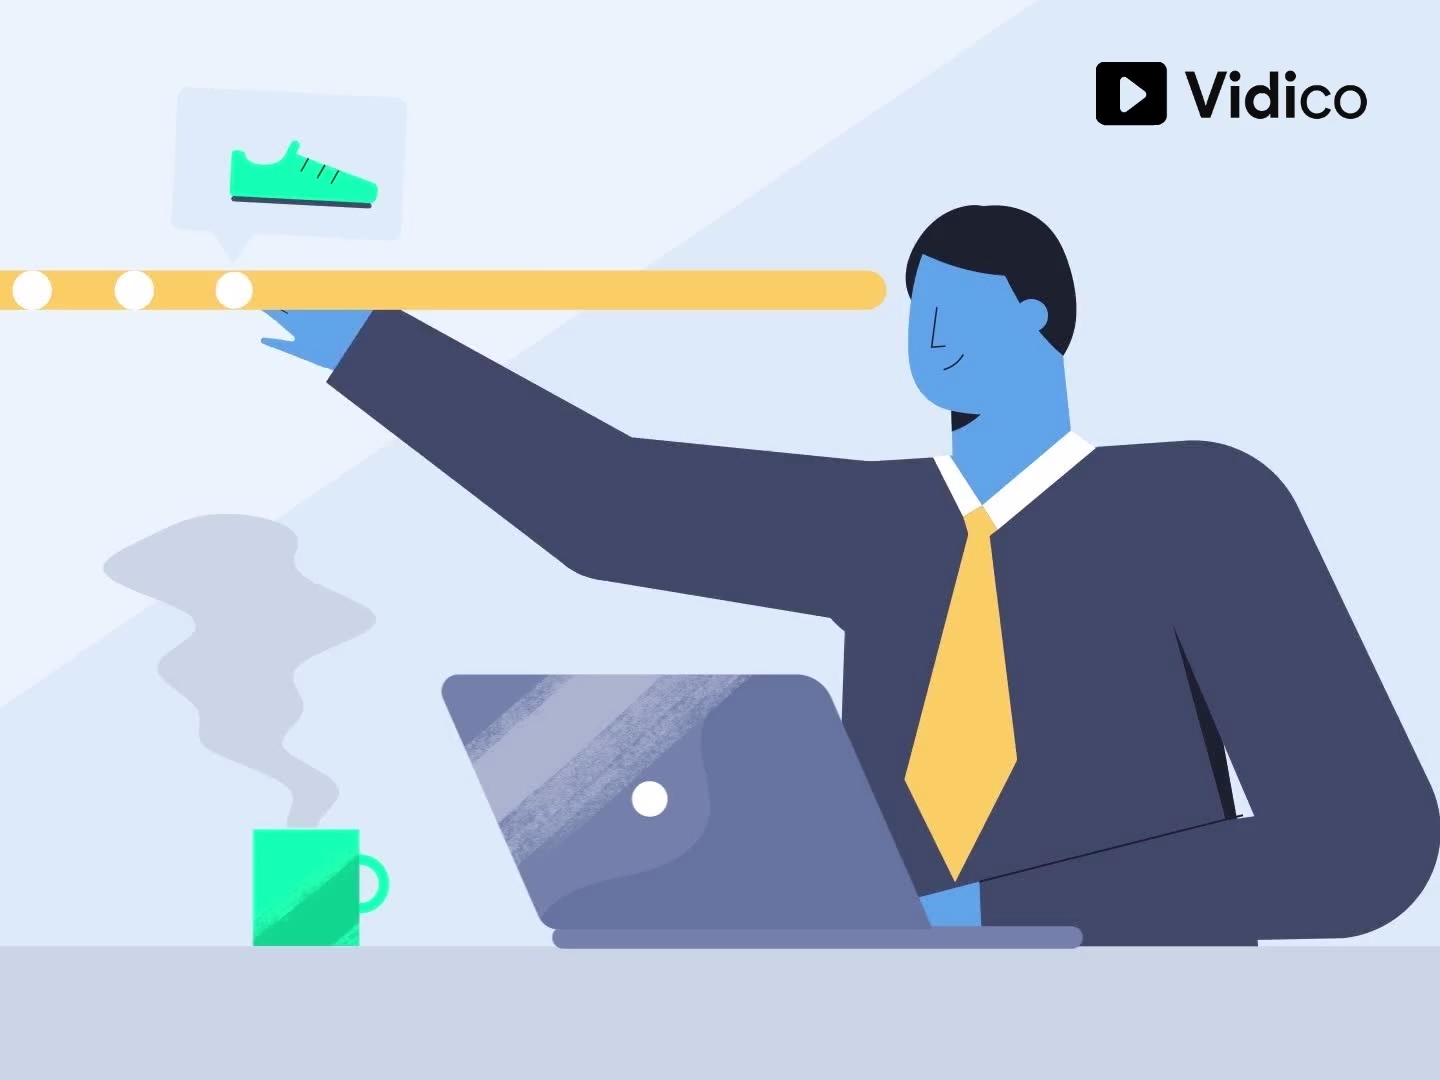 Vidico is an award-winning video production company with projects across Melbourne, Sydney and the world. Explainer videos, product videos, and stunning commercials, produced at high-quality, and made affordable for both startups and enterprise companies.